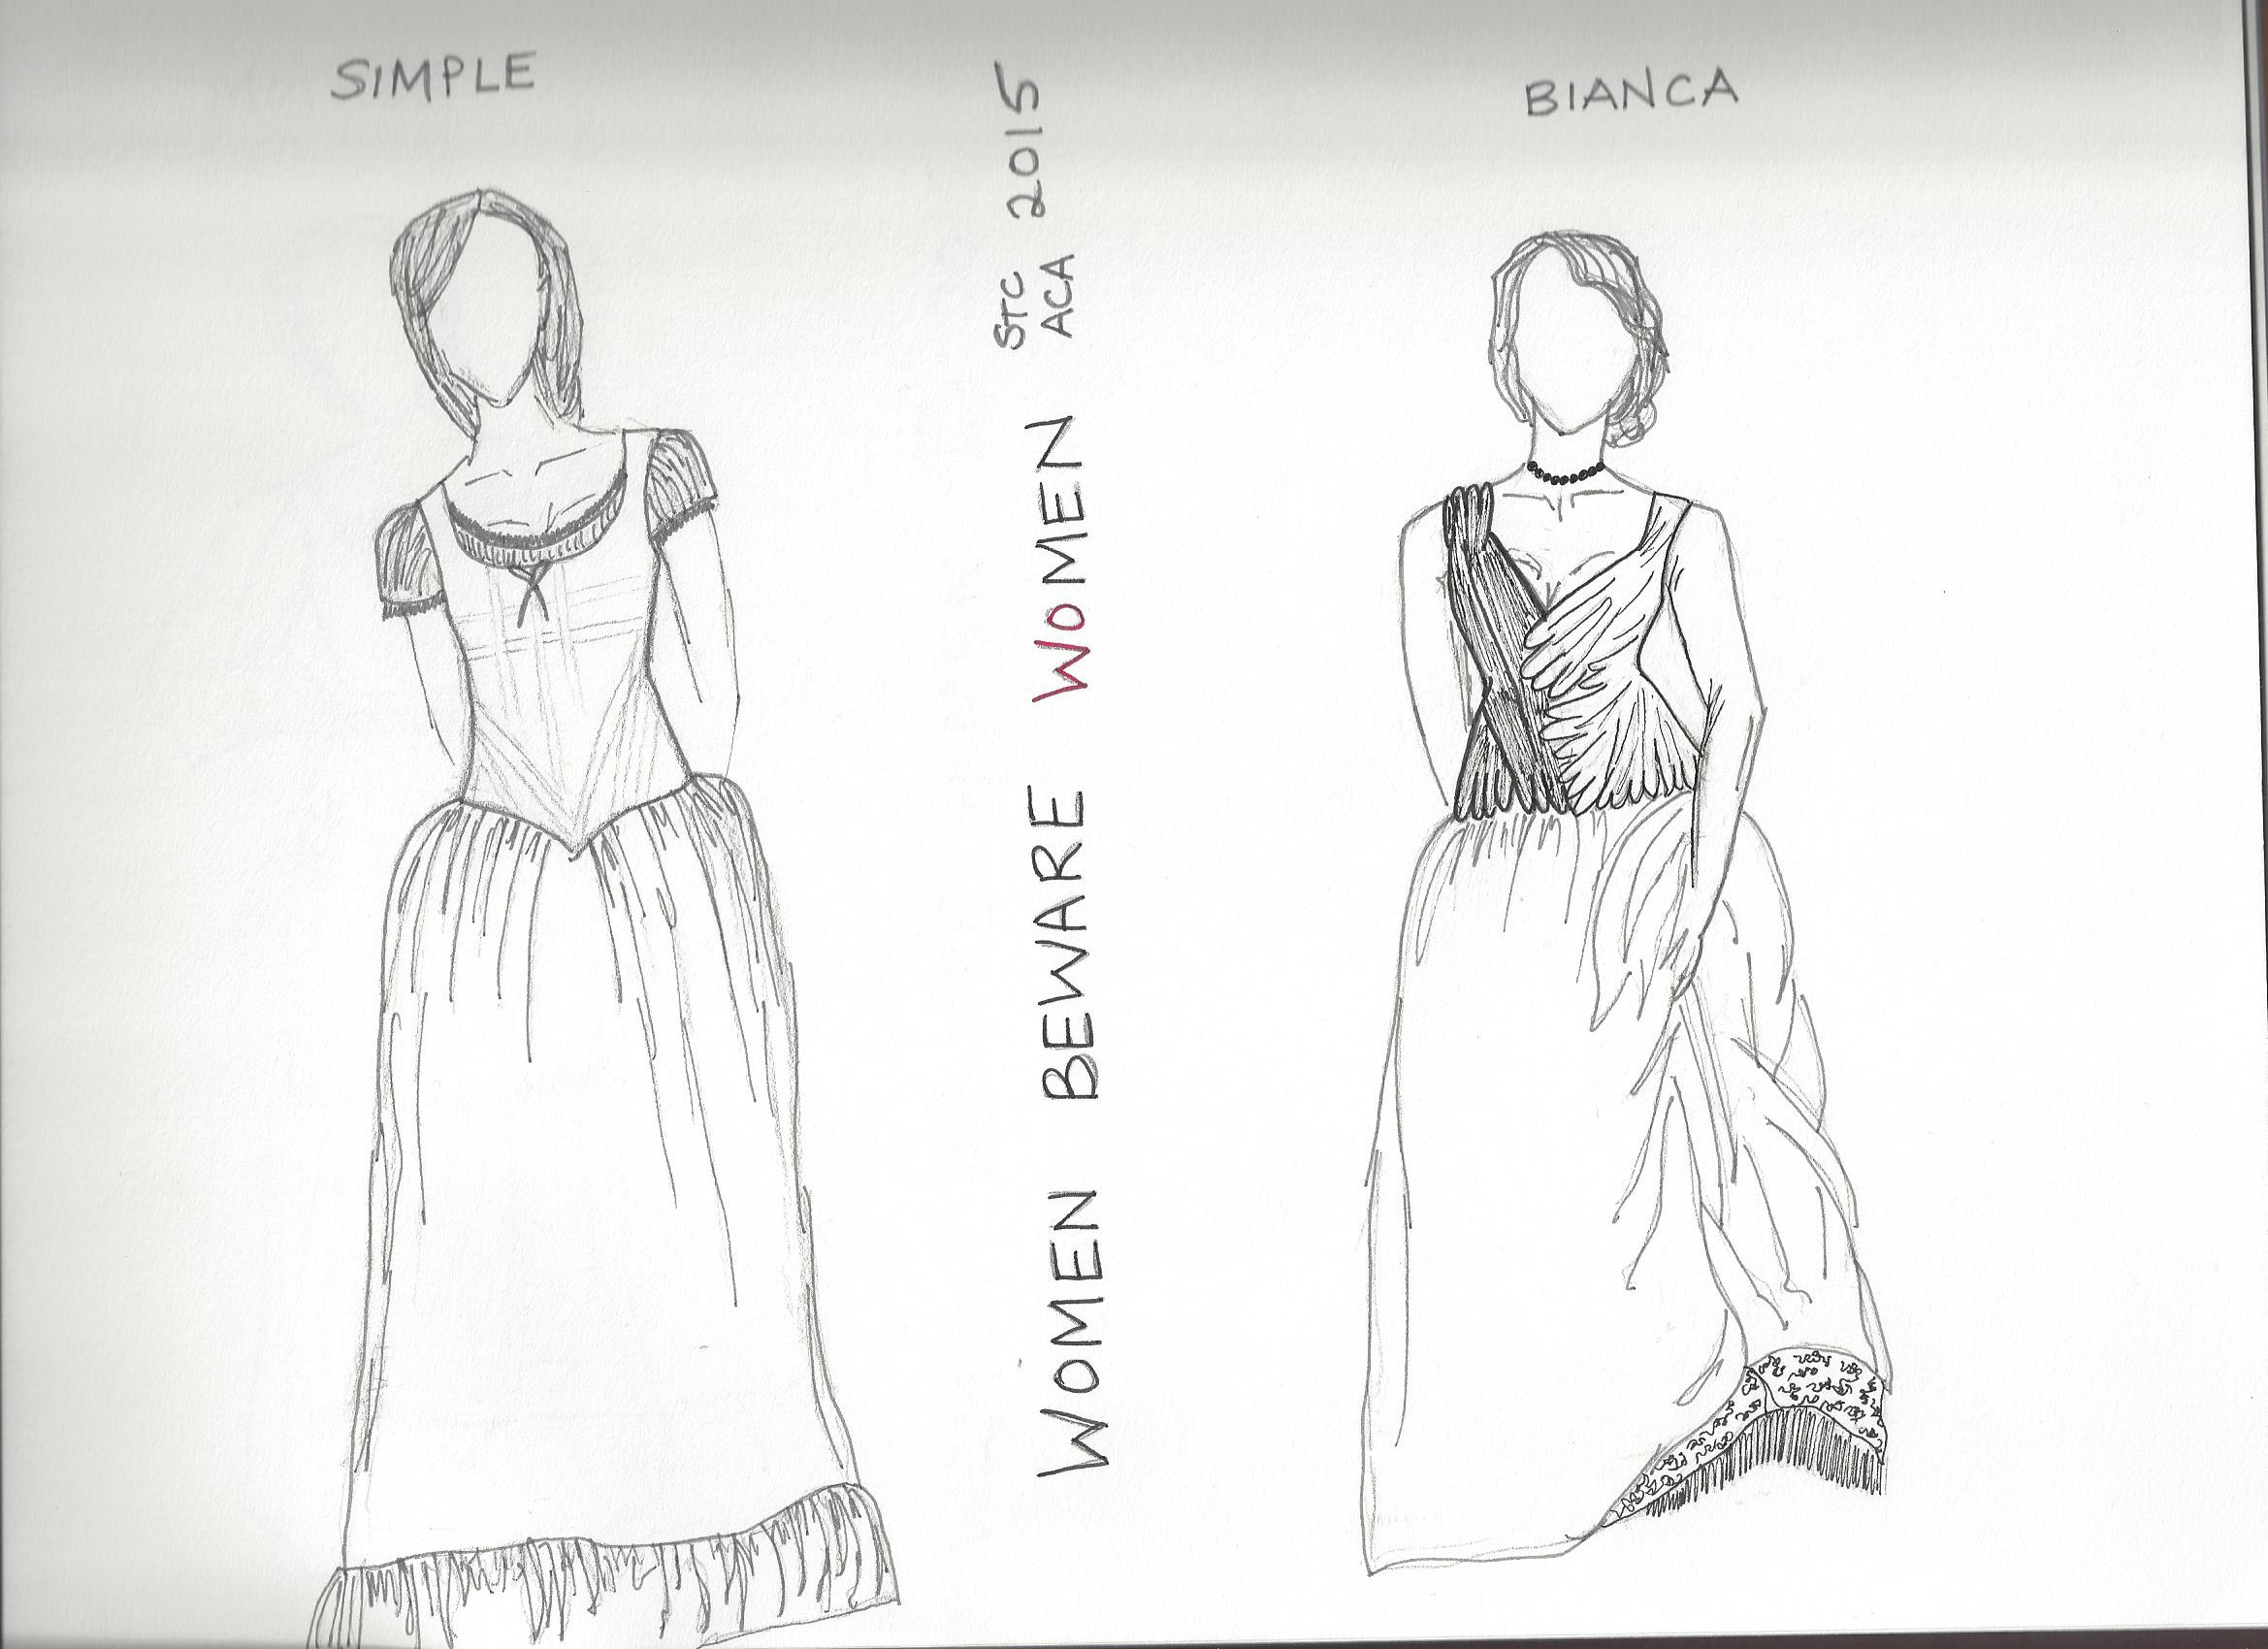 B&W Sketches - Simple and Bianca's Final Look    Women Beware Women    Directed by Lisa Wolpe With Eleanor Holdridge The Shakespeare Theatre's Academy for Classical Acting with GWU June 2015